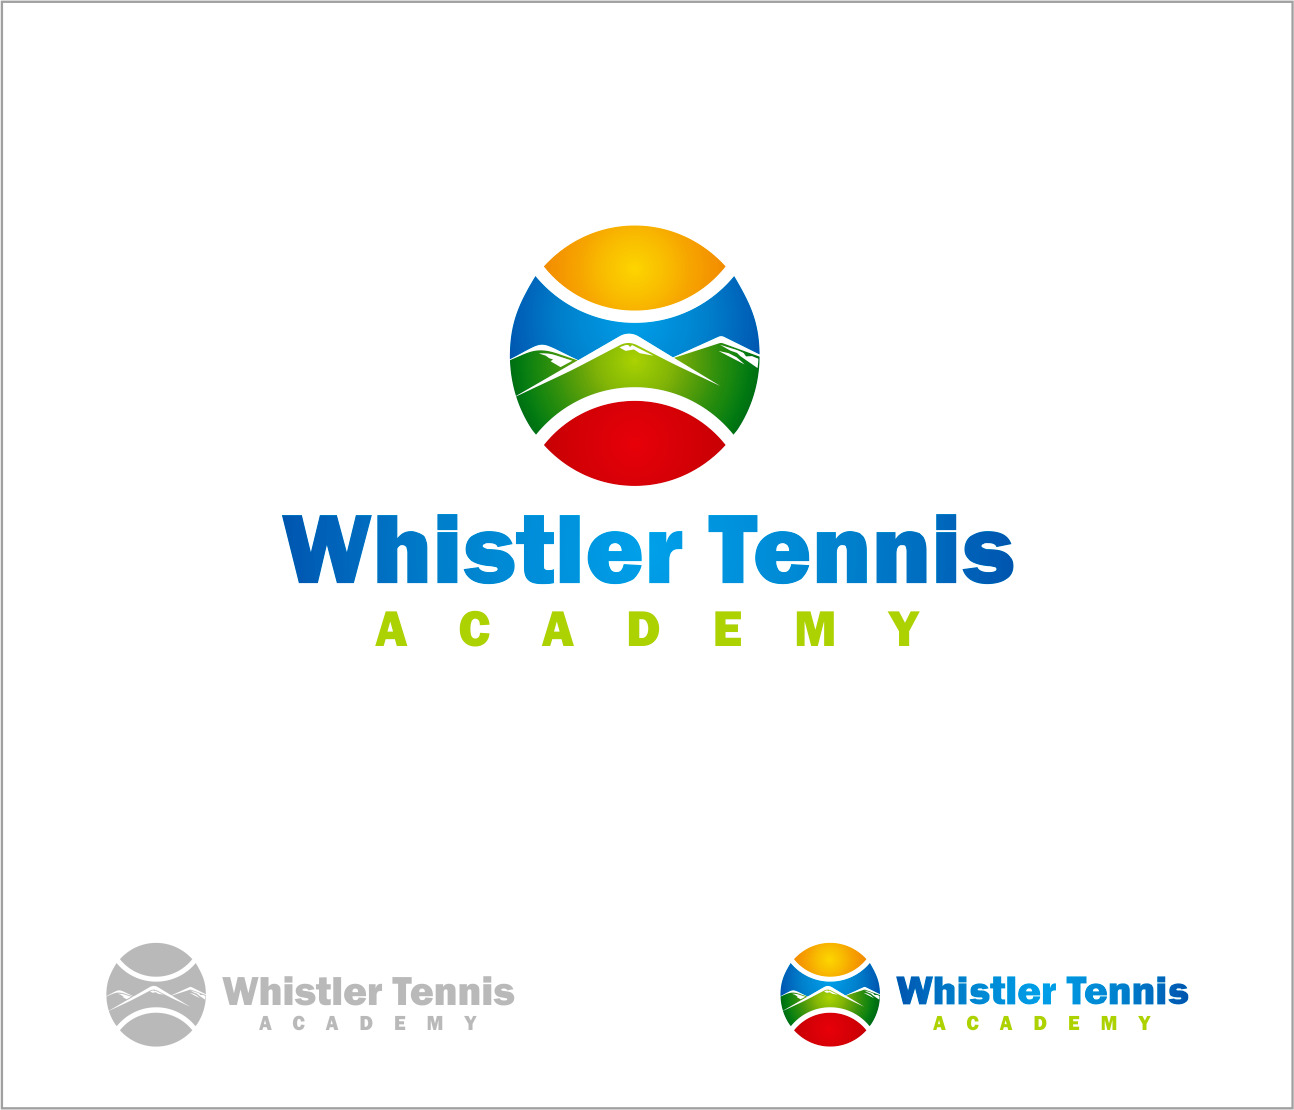 Logo Design by Armada Jamaluddin - Entry No. 187 in the Logo Design Contest Imaginative Logo Design for Whistler Tennis Academy.